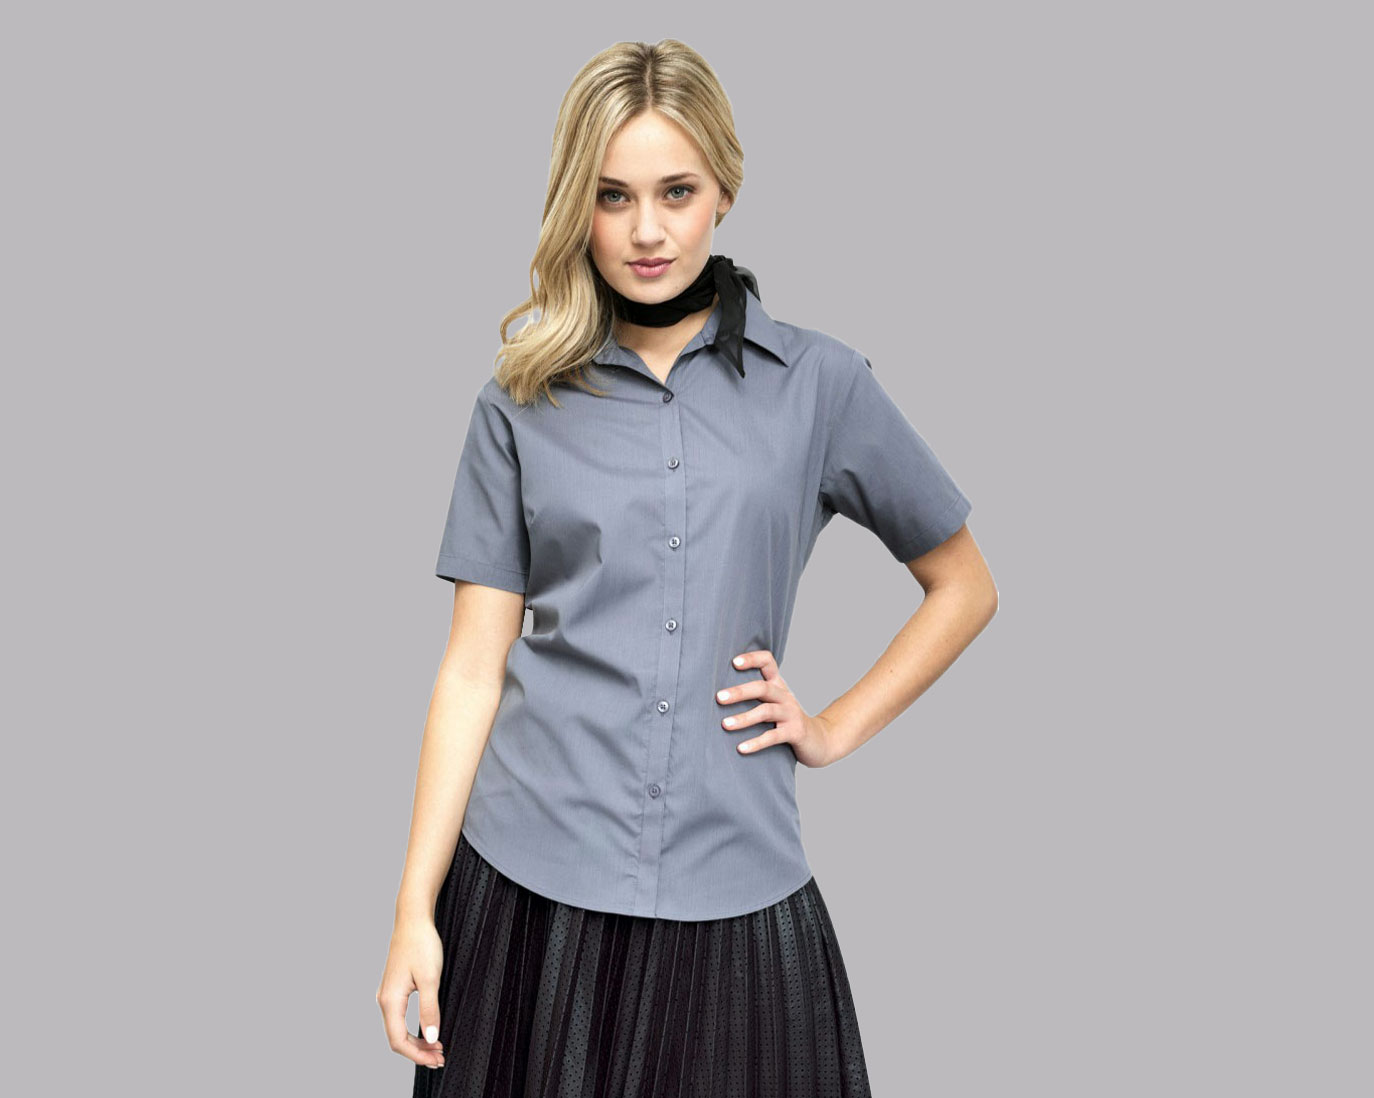 Women's Office Clothing